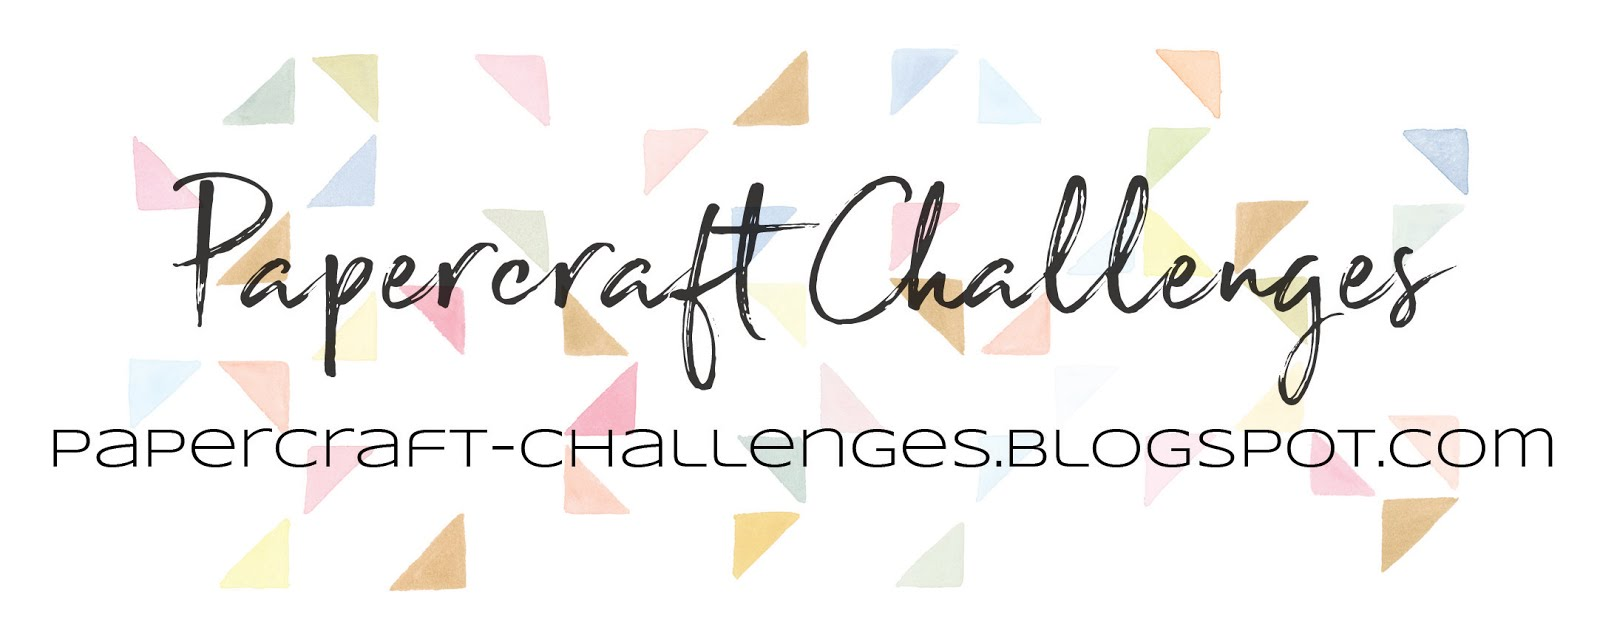 Papercraft-challenges